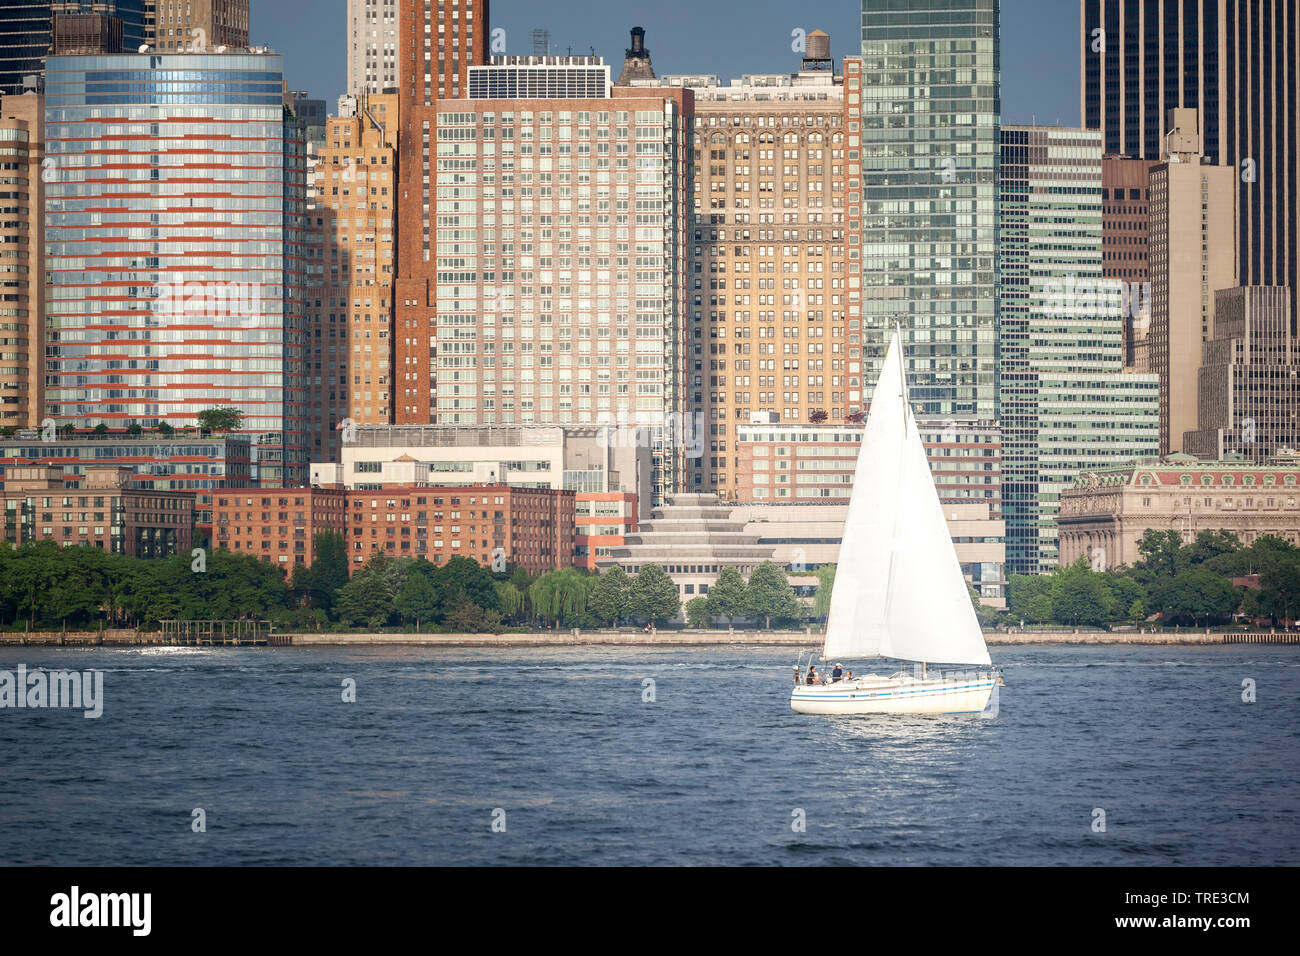 Segelboot vor New York, USA, USA, New York (Bundesstaat) | sailing boat in front of New York, USA, USA, New York (state) | BLWS516250.jpg [ (c) blickw Stock Photo